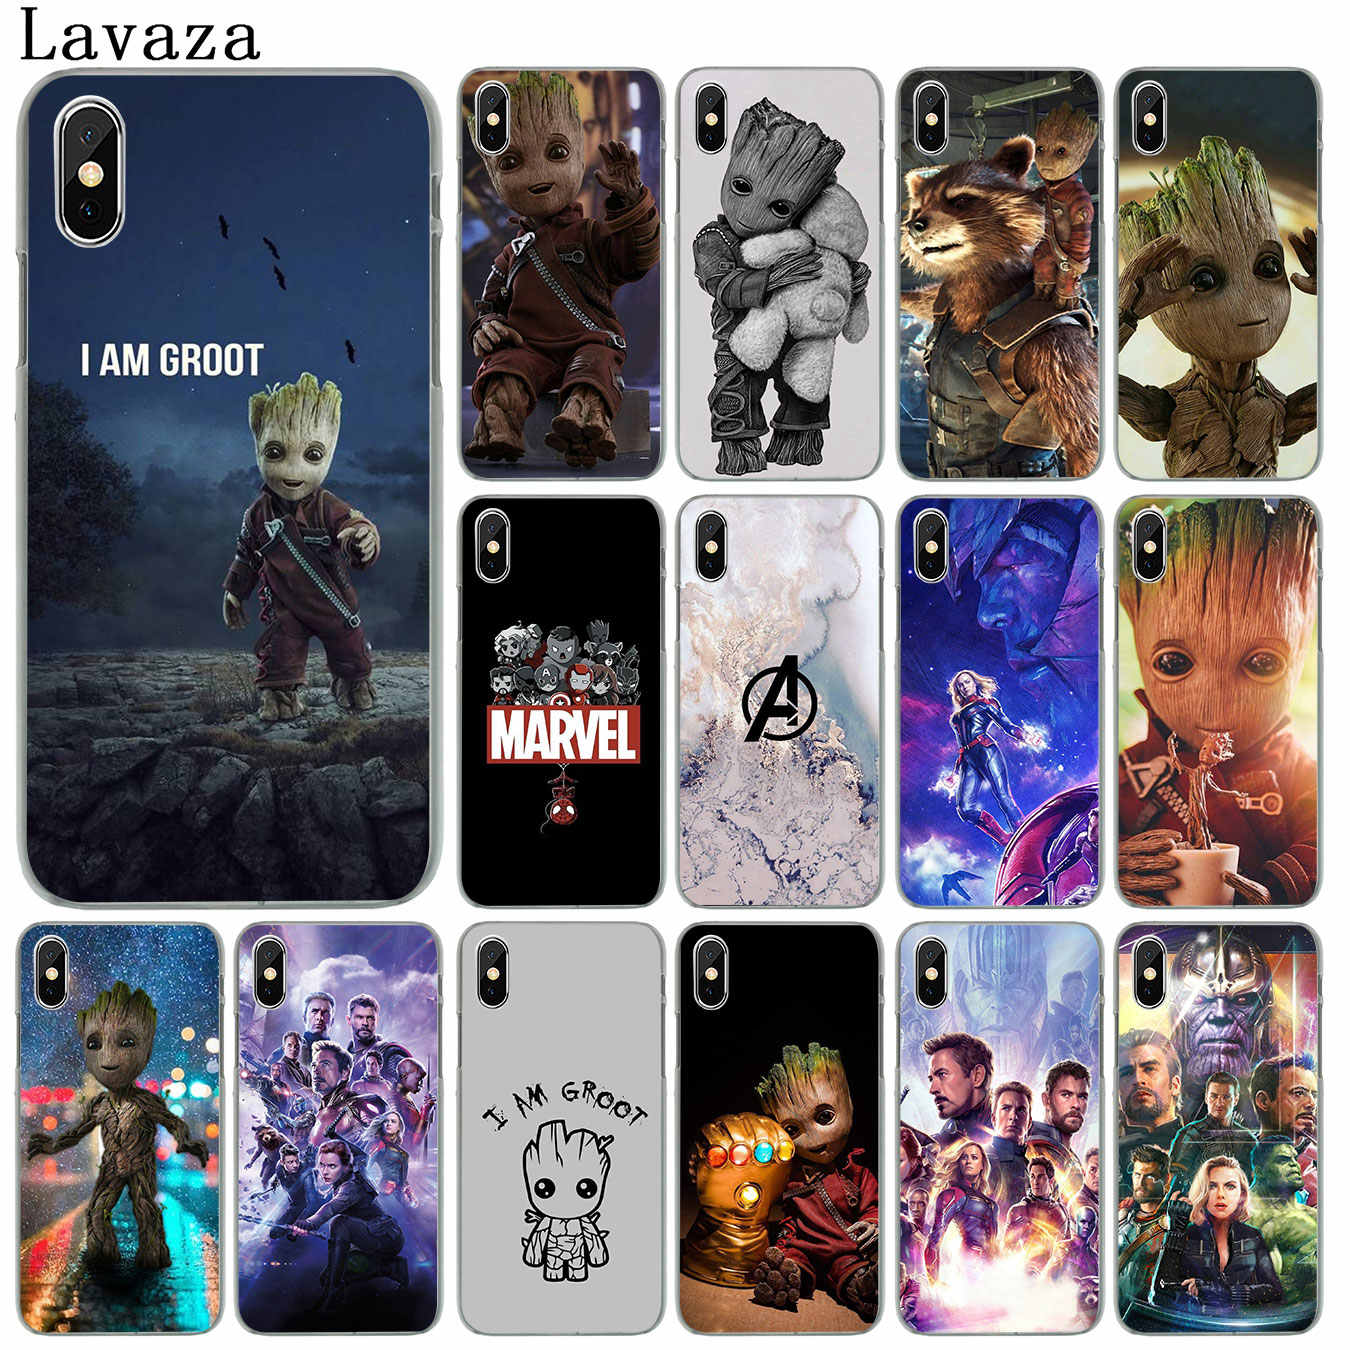 Capa para iphone xr x xs 11 pro max 10 7 8 6 s 5 5S se capa de telefone guardiões do para galaxy marvel avengers endgame thanos